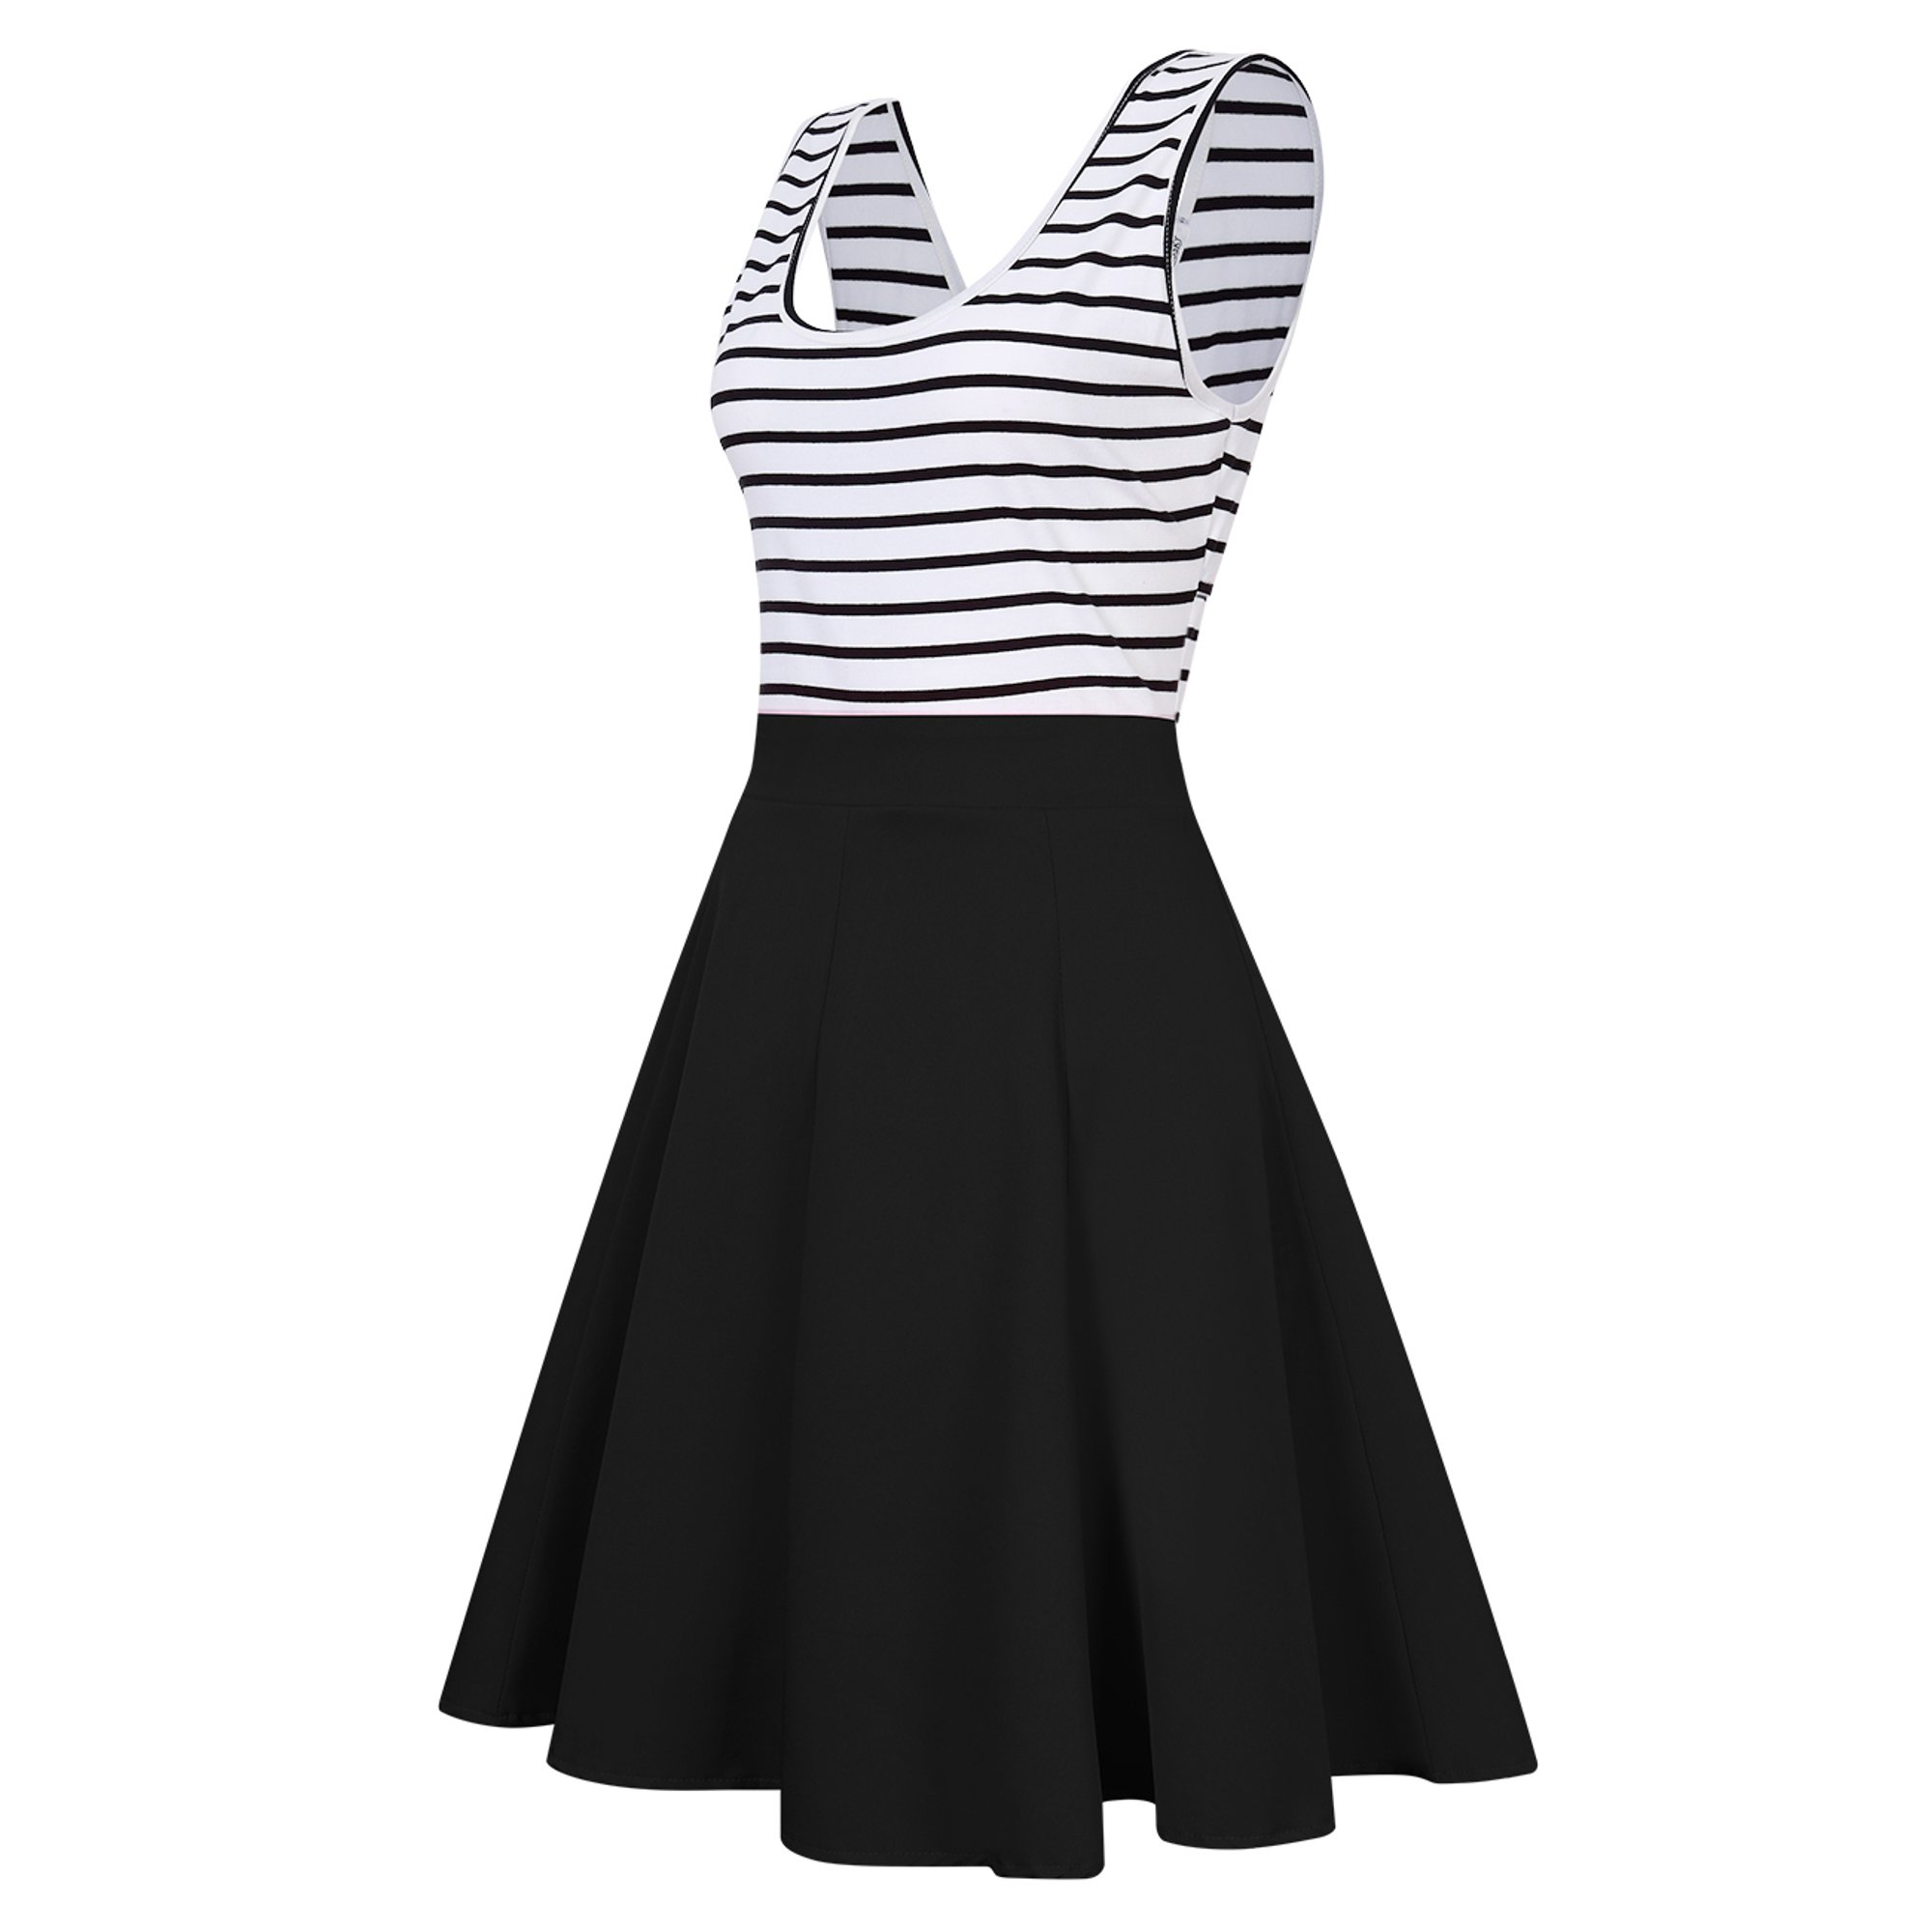 3cde4a60116e2 Women's Open Back Sleeveless Sexy Hollow Out Slim Fit Black White Stripe  Casual Cocktail Cute Mini Swing Dress | Walmart Canada ?